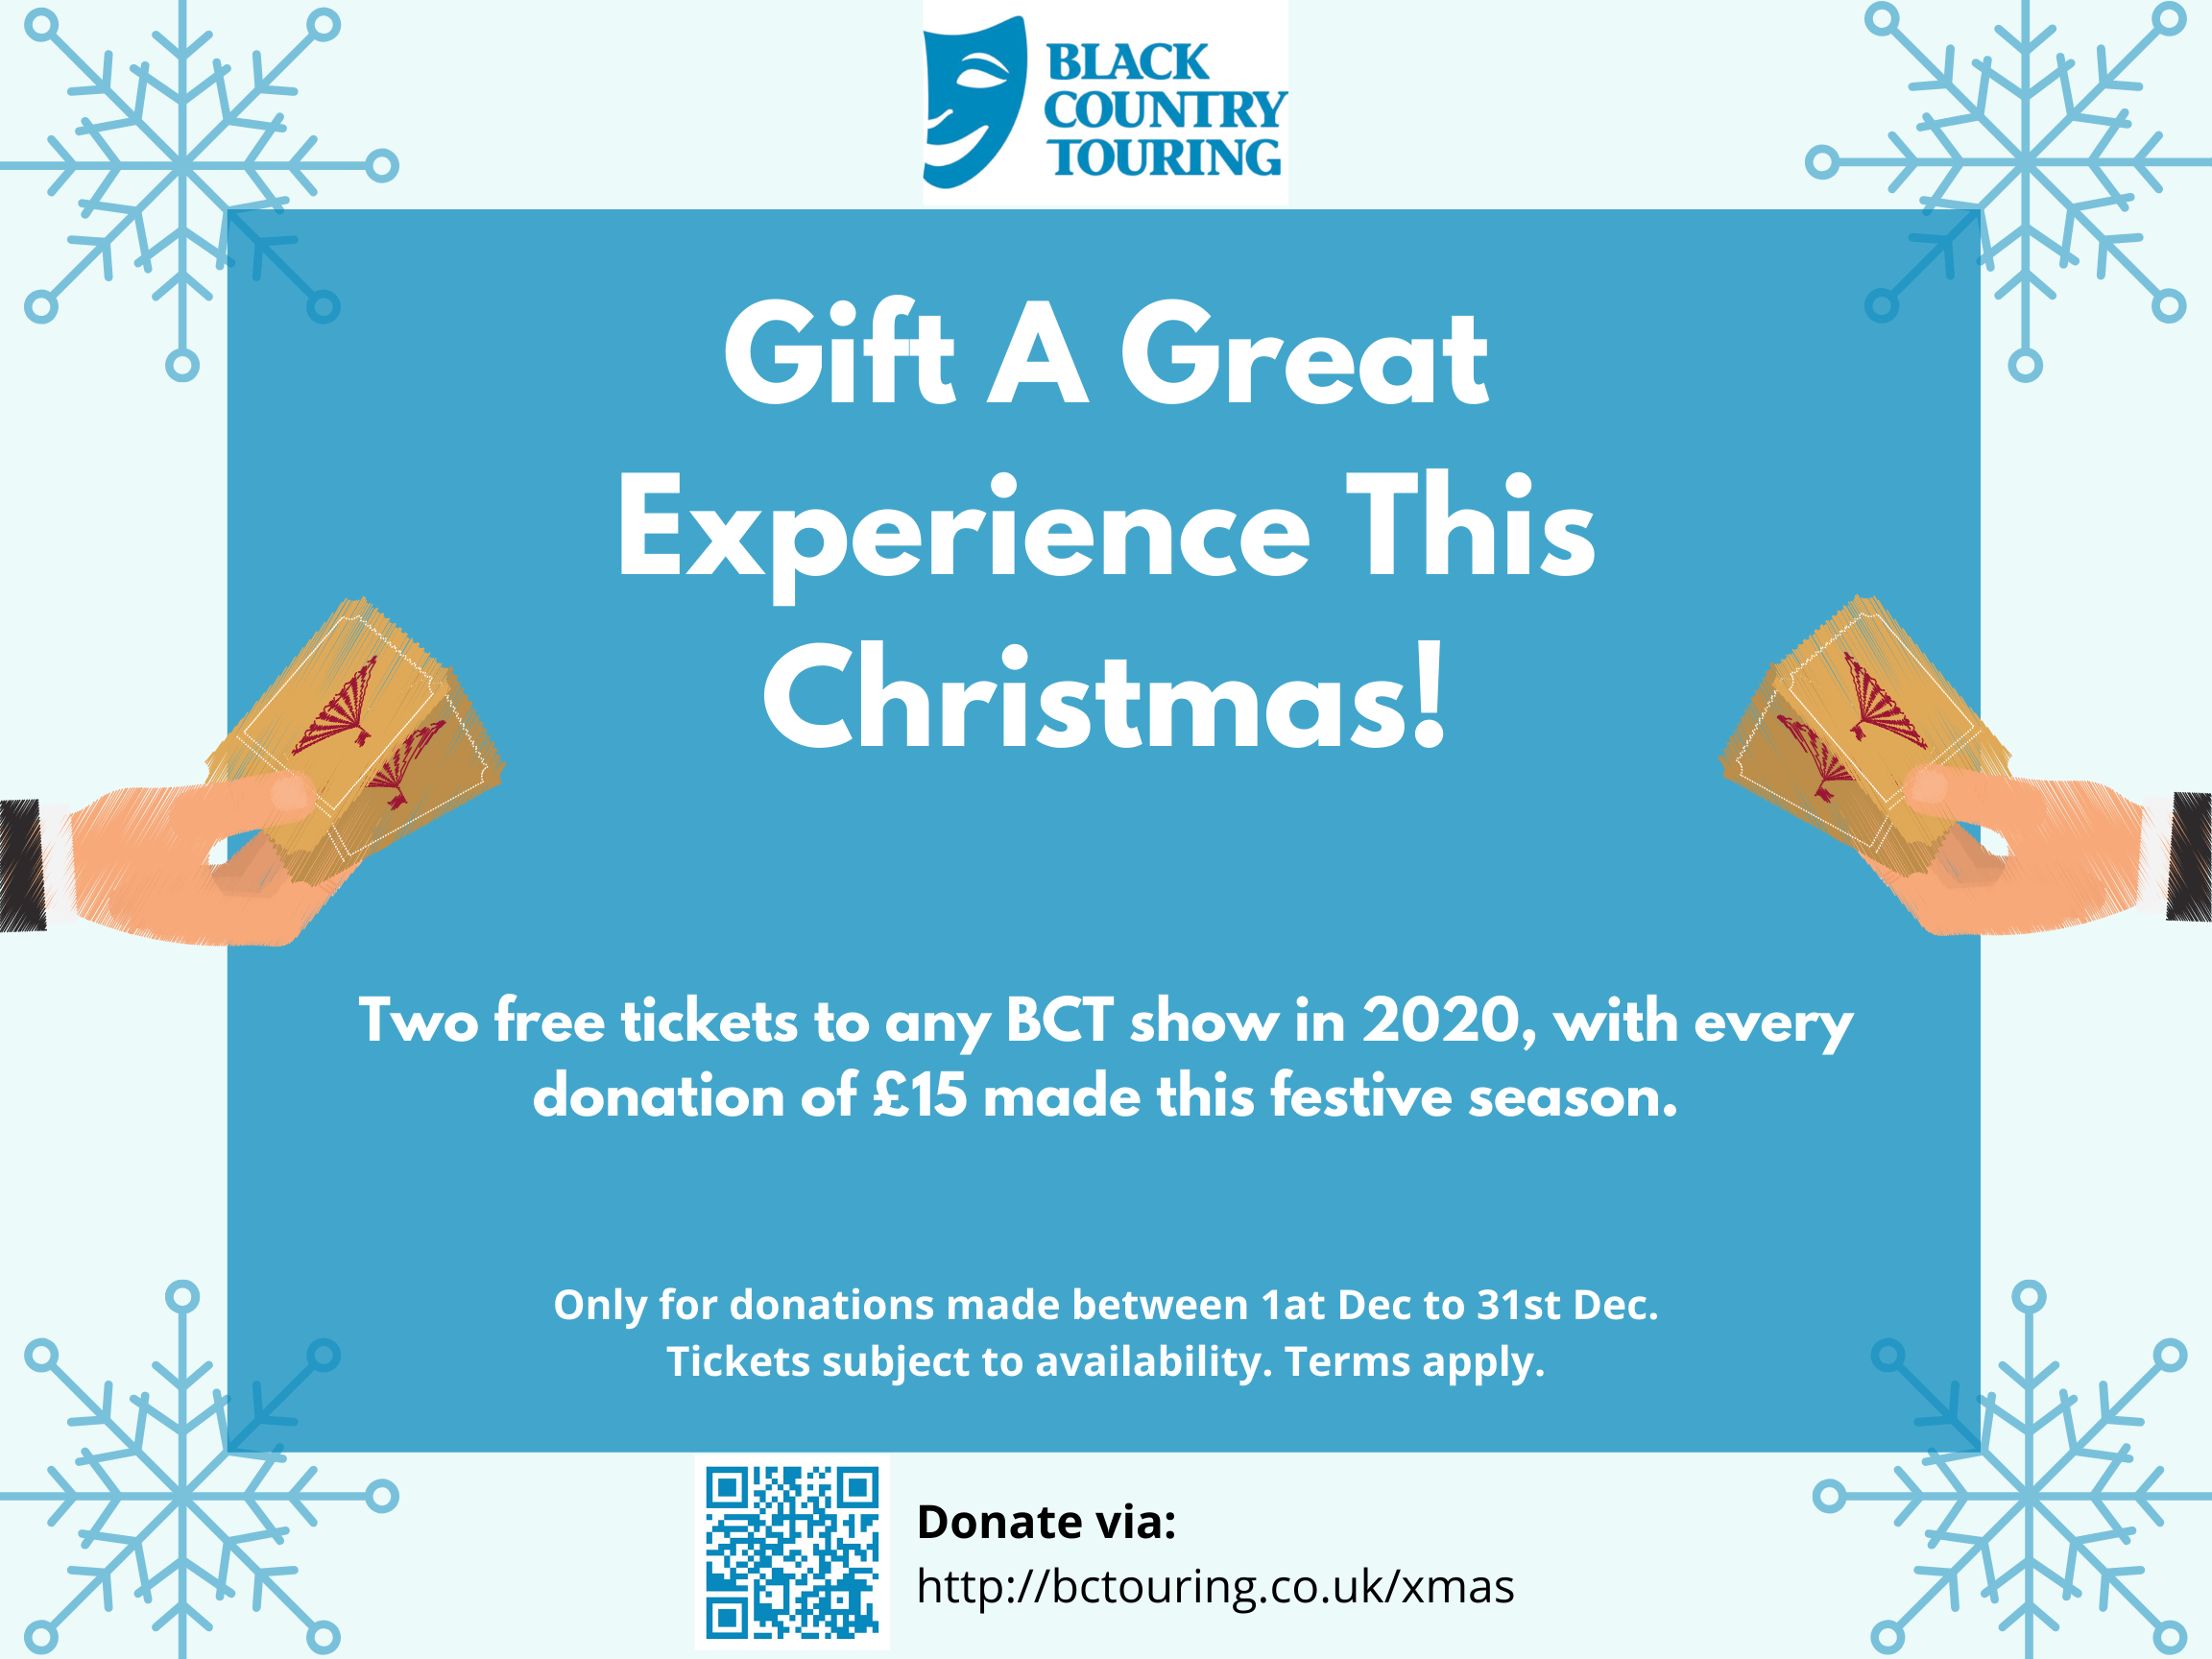 Gift a Great Experience this Christmas